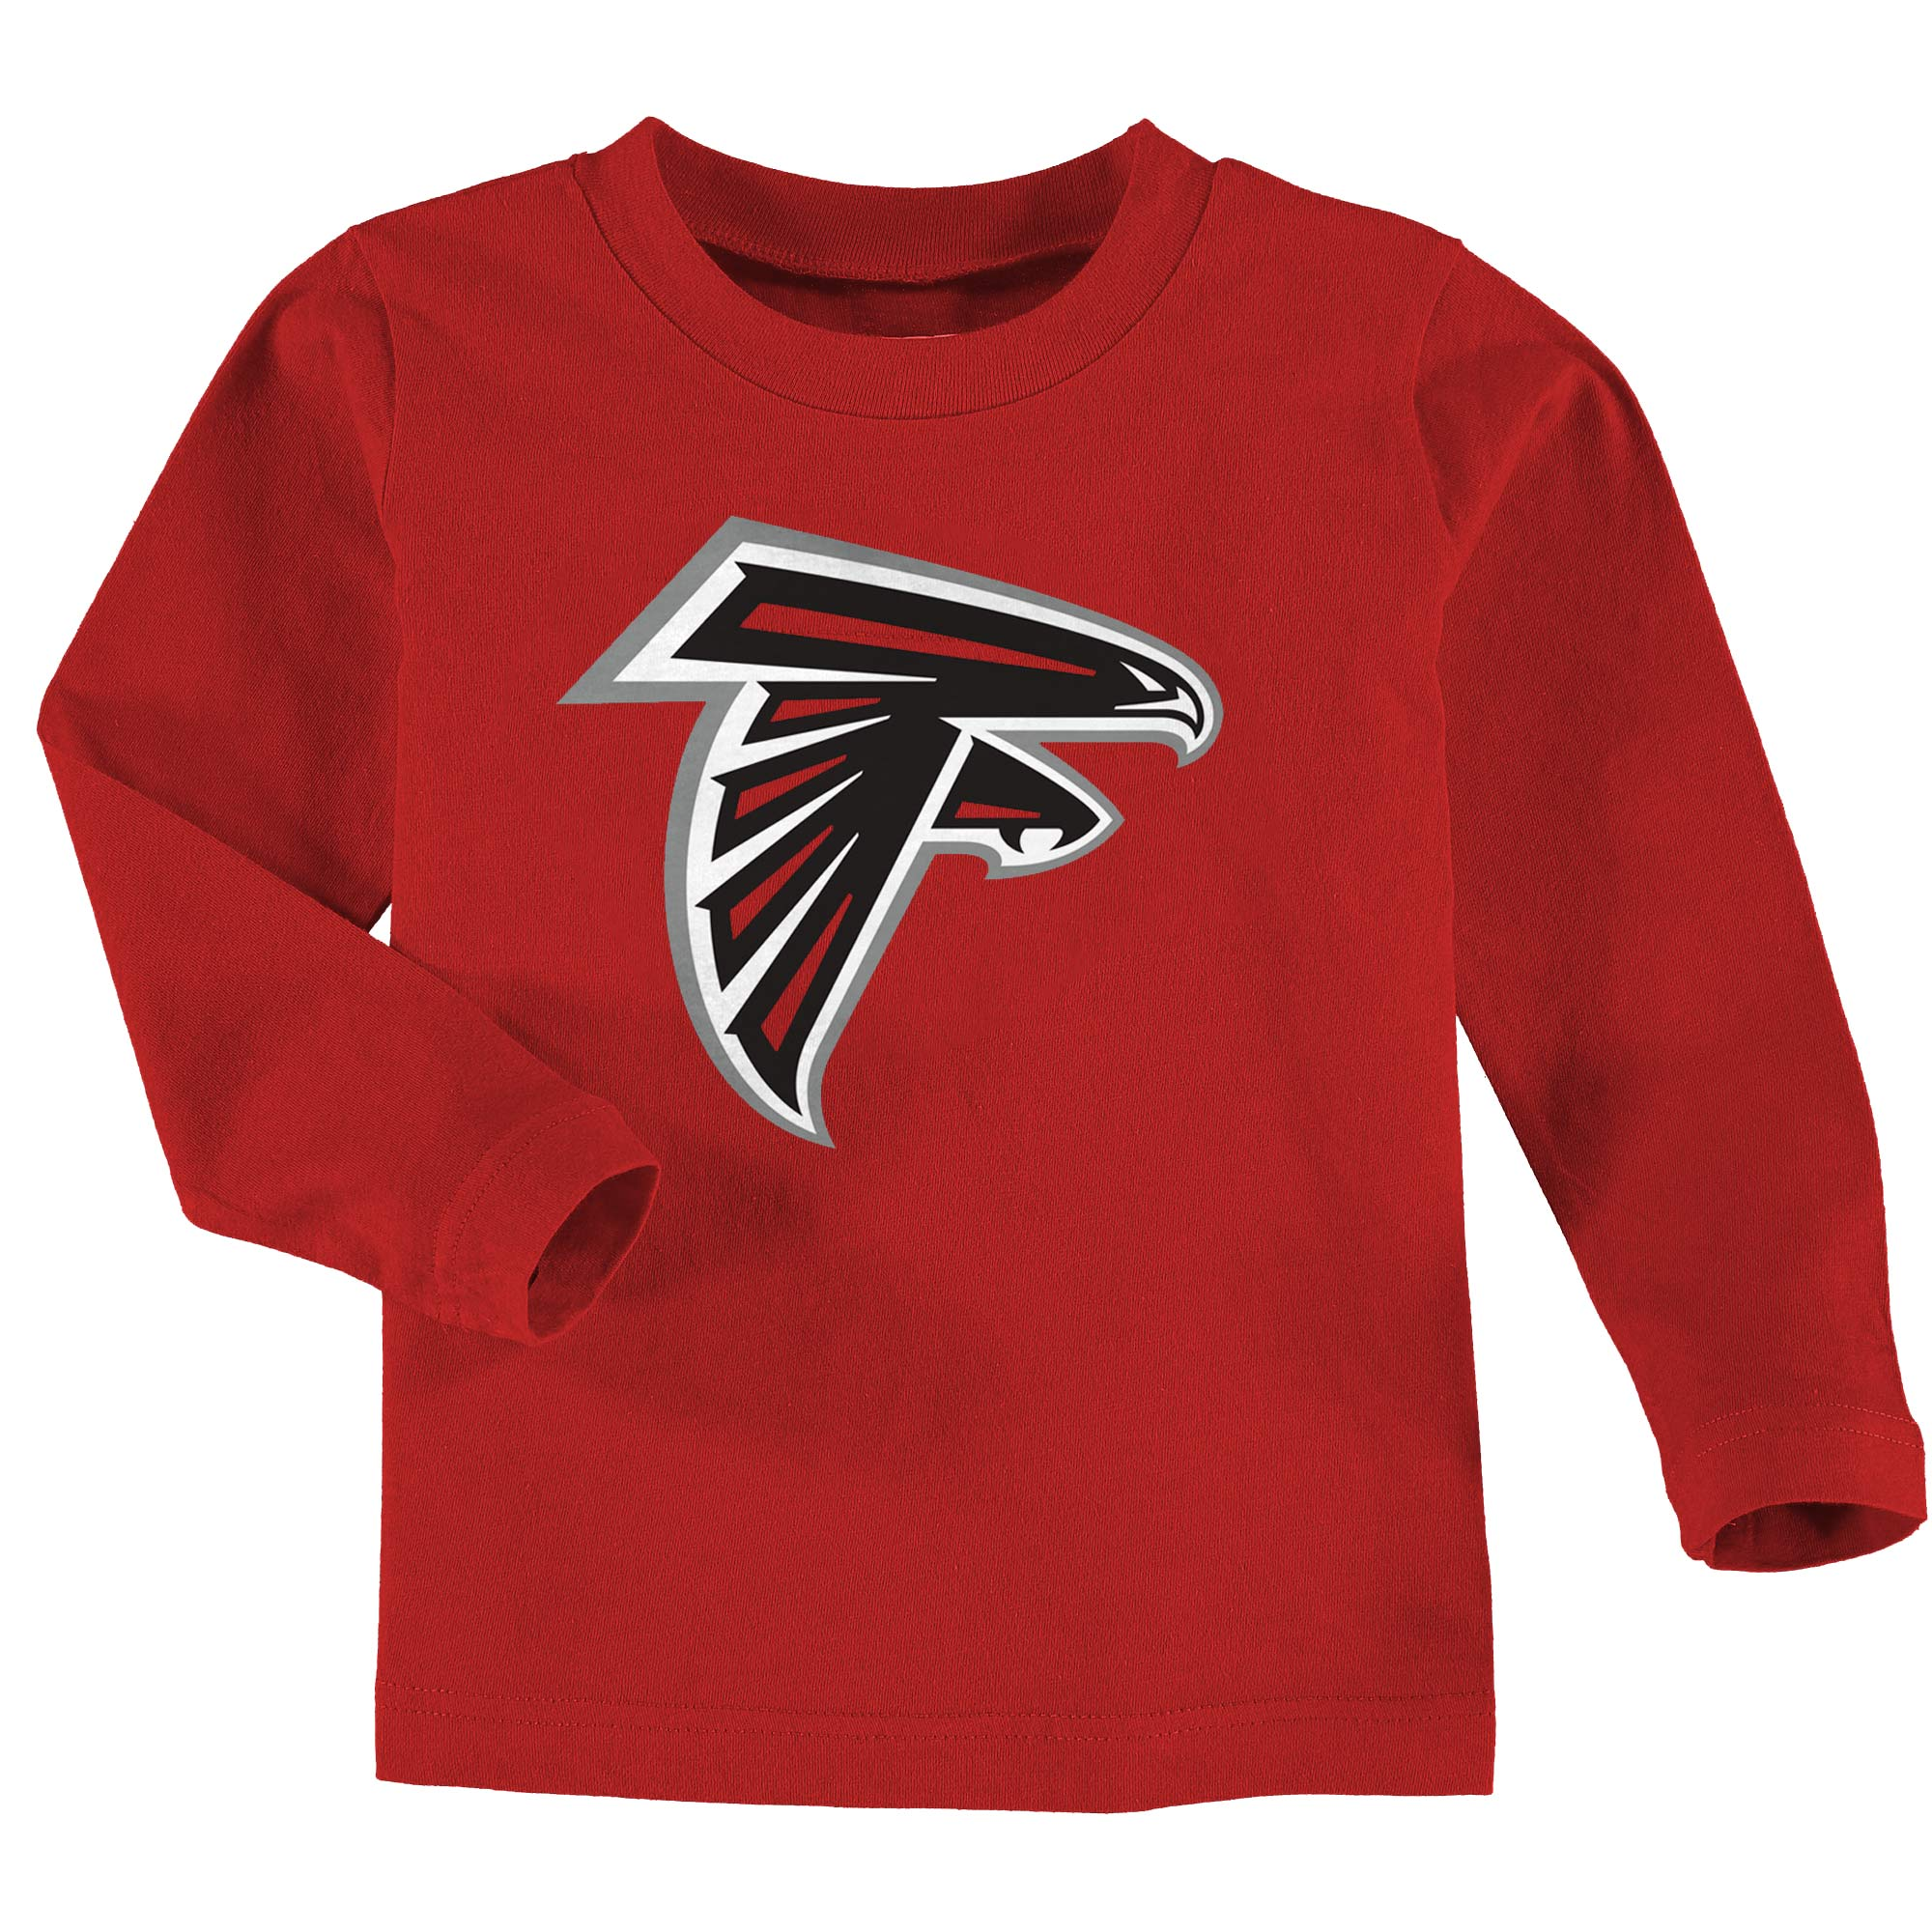 Atlanta Falcons Toddler Team Logo Long Sleeve T-Shirt - Red - 2T